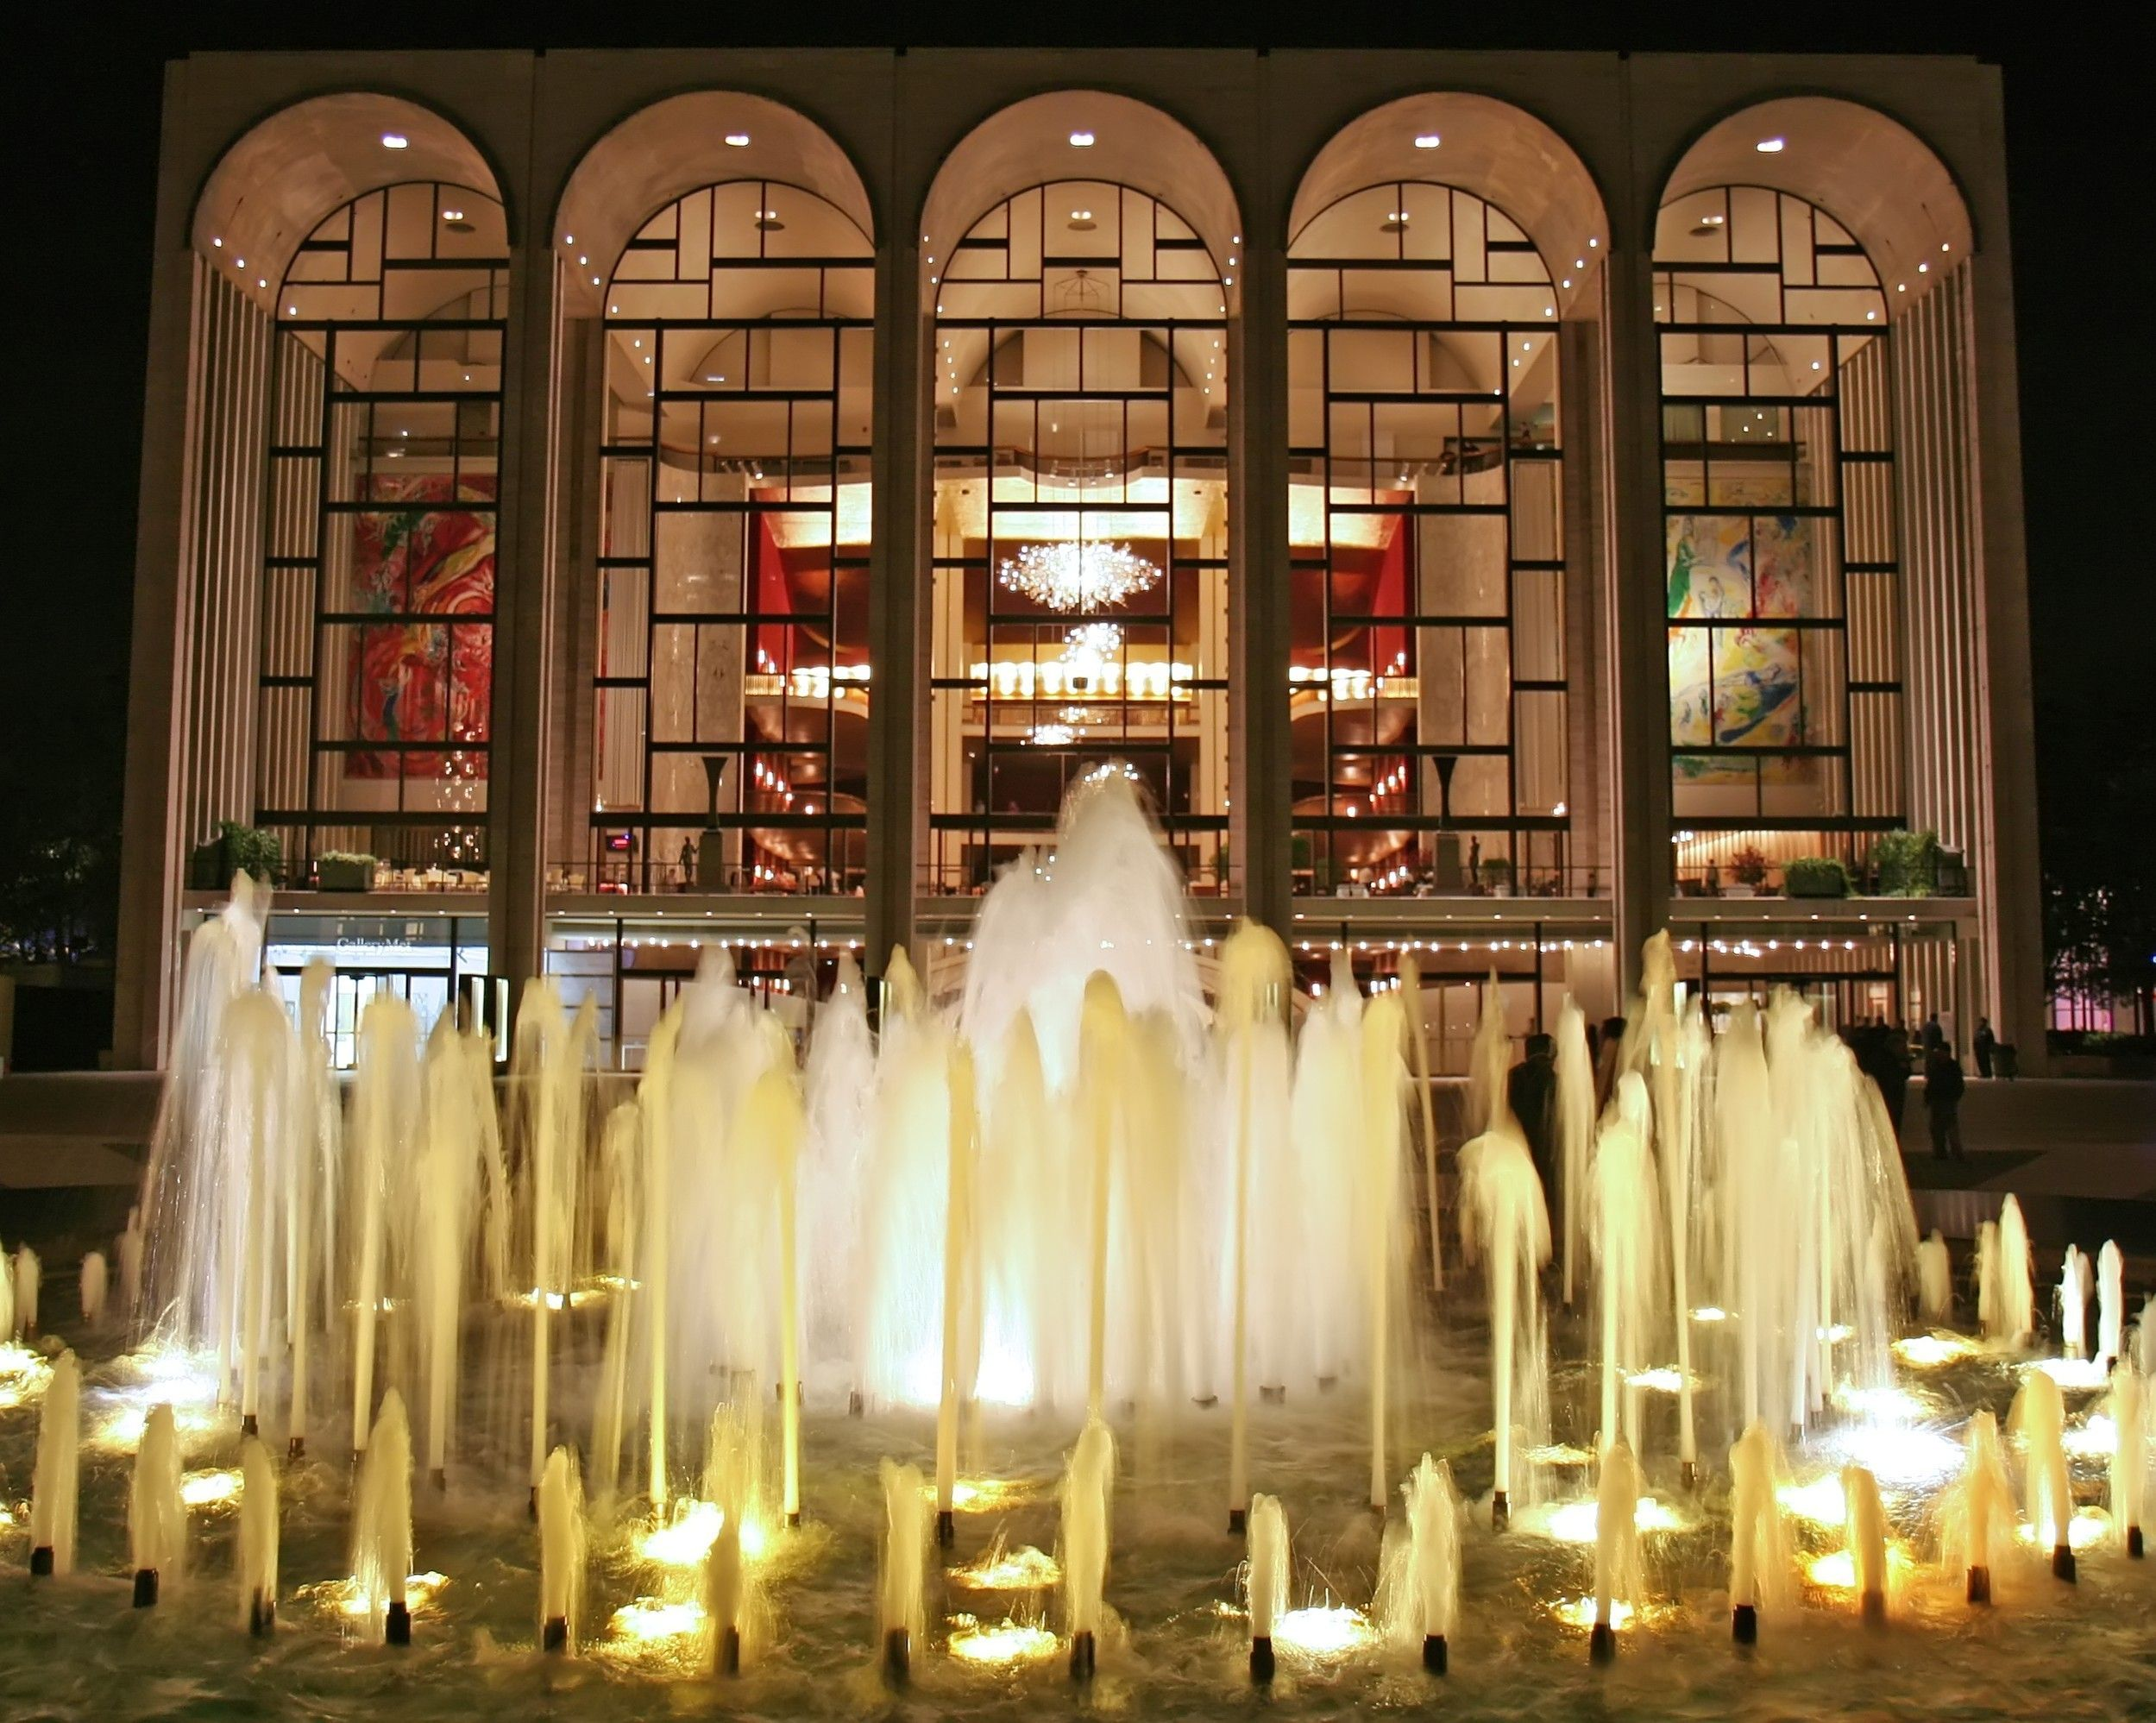 The Metropolitan Opera At Lincoln Center On The Upper West Side Of Manhattan In New York City B New York City Attractions New York Museums Metropolitan Opera